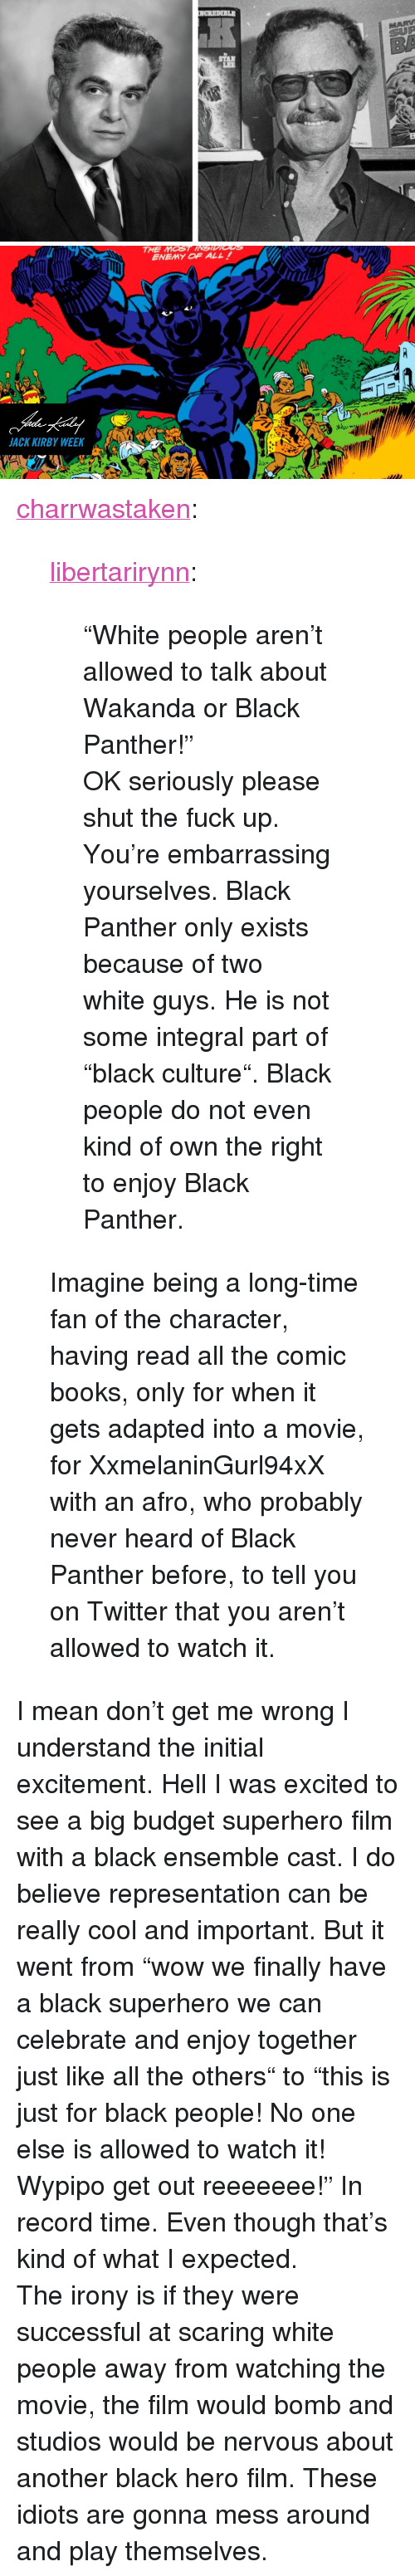 "Books, Superhero, and Tumblr: LEE   THE MOST INSIDIGns  ENEMY OF ALL  JACK KIRBY WEEKA <p><a href=""https://charrwastaken.tumblr.com/post/170981224483/libertarirynn-white-people-arent-allowed-to"" class=""tumblr_blog"">charrwastaken</a>:</p>  <blockquote><p><a href=""https://libertarirynn.tumblr.com/post/170981033654/white-people-arent-allowed-to-talk-about-wakanda"" class=""tumblr_blog"">libertarirynn</a>:</p><blockquote> <p>""White people aren't allowed to talk about Wakanda or Black Panther!""</p>  <p>OK seriously please shut the fuck up. You're embarrassing yourselves. Black Panther only exists because of two white guys. He is not some integral part of ""black culture"". Black people do not even kind of own the right to enjoy Black Panther.</p> </blockquote> <p>Imagine being a long-time fan of the character, having read all the comic books, only for when it gets adapted into a movie, for XxmelaninGurl94xX with an afro, who probably never heard of Black Panther before, to tell you on Twitter that you aren't allowed to watch it.<br/></p></blockquote>  <p>I mean don't get me wrong I understand the initial excitement. Hell I was excited to see a big budget superhero film with a black ensemble cast. I do believe representation can be really cool and important. But it went from ""wow we finally have a black superhero we can celebrate and enjoy together just like all the others"" to ""this is just for black people! No one else is allowed to watch it! Wypipo get out reeeeeee!"" In record time. Even though that's kind of what I expected.</p><p>The irony is if they were successful at scaring white people away from watching the movie, the film would bomb and studios would be nervous about another black hero film. These idiots are gonna mess around and play themselves.</p>"